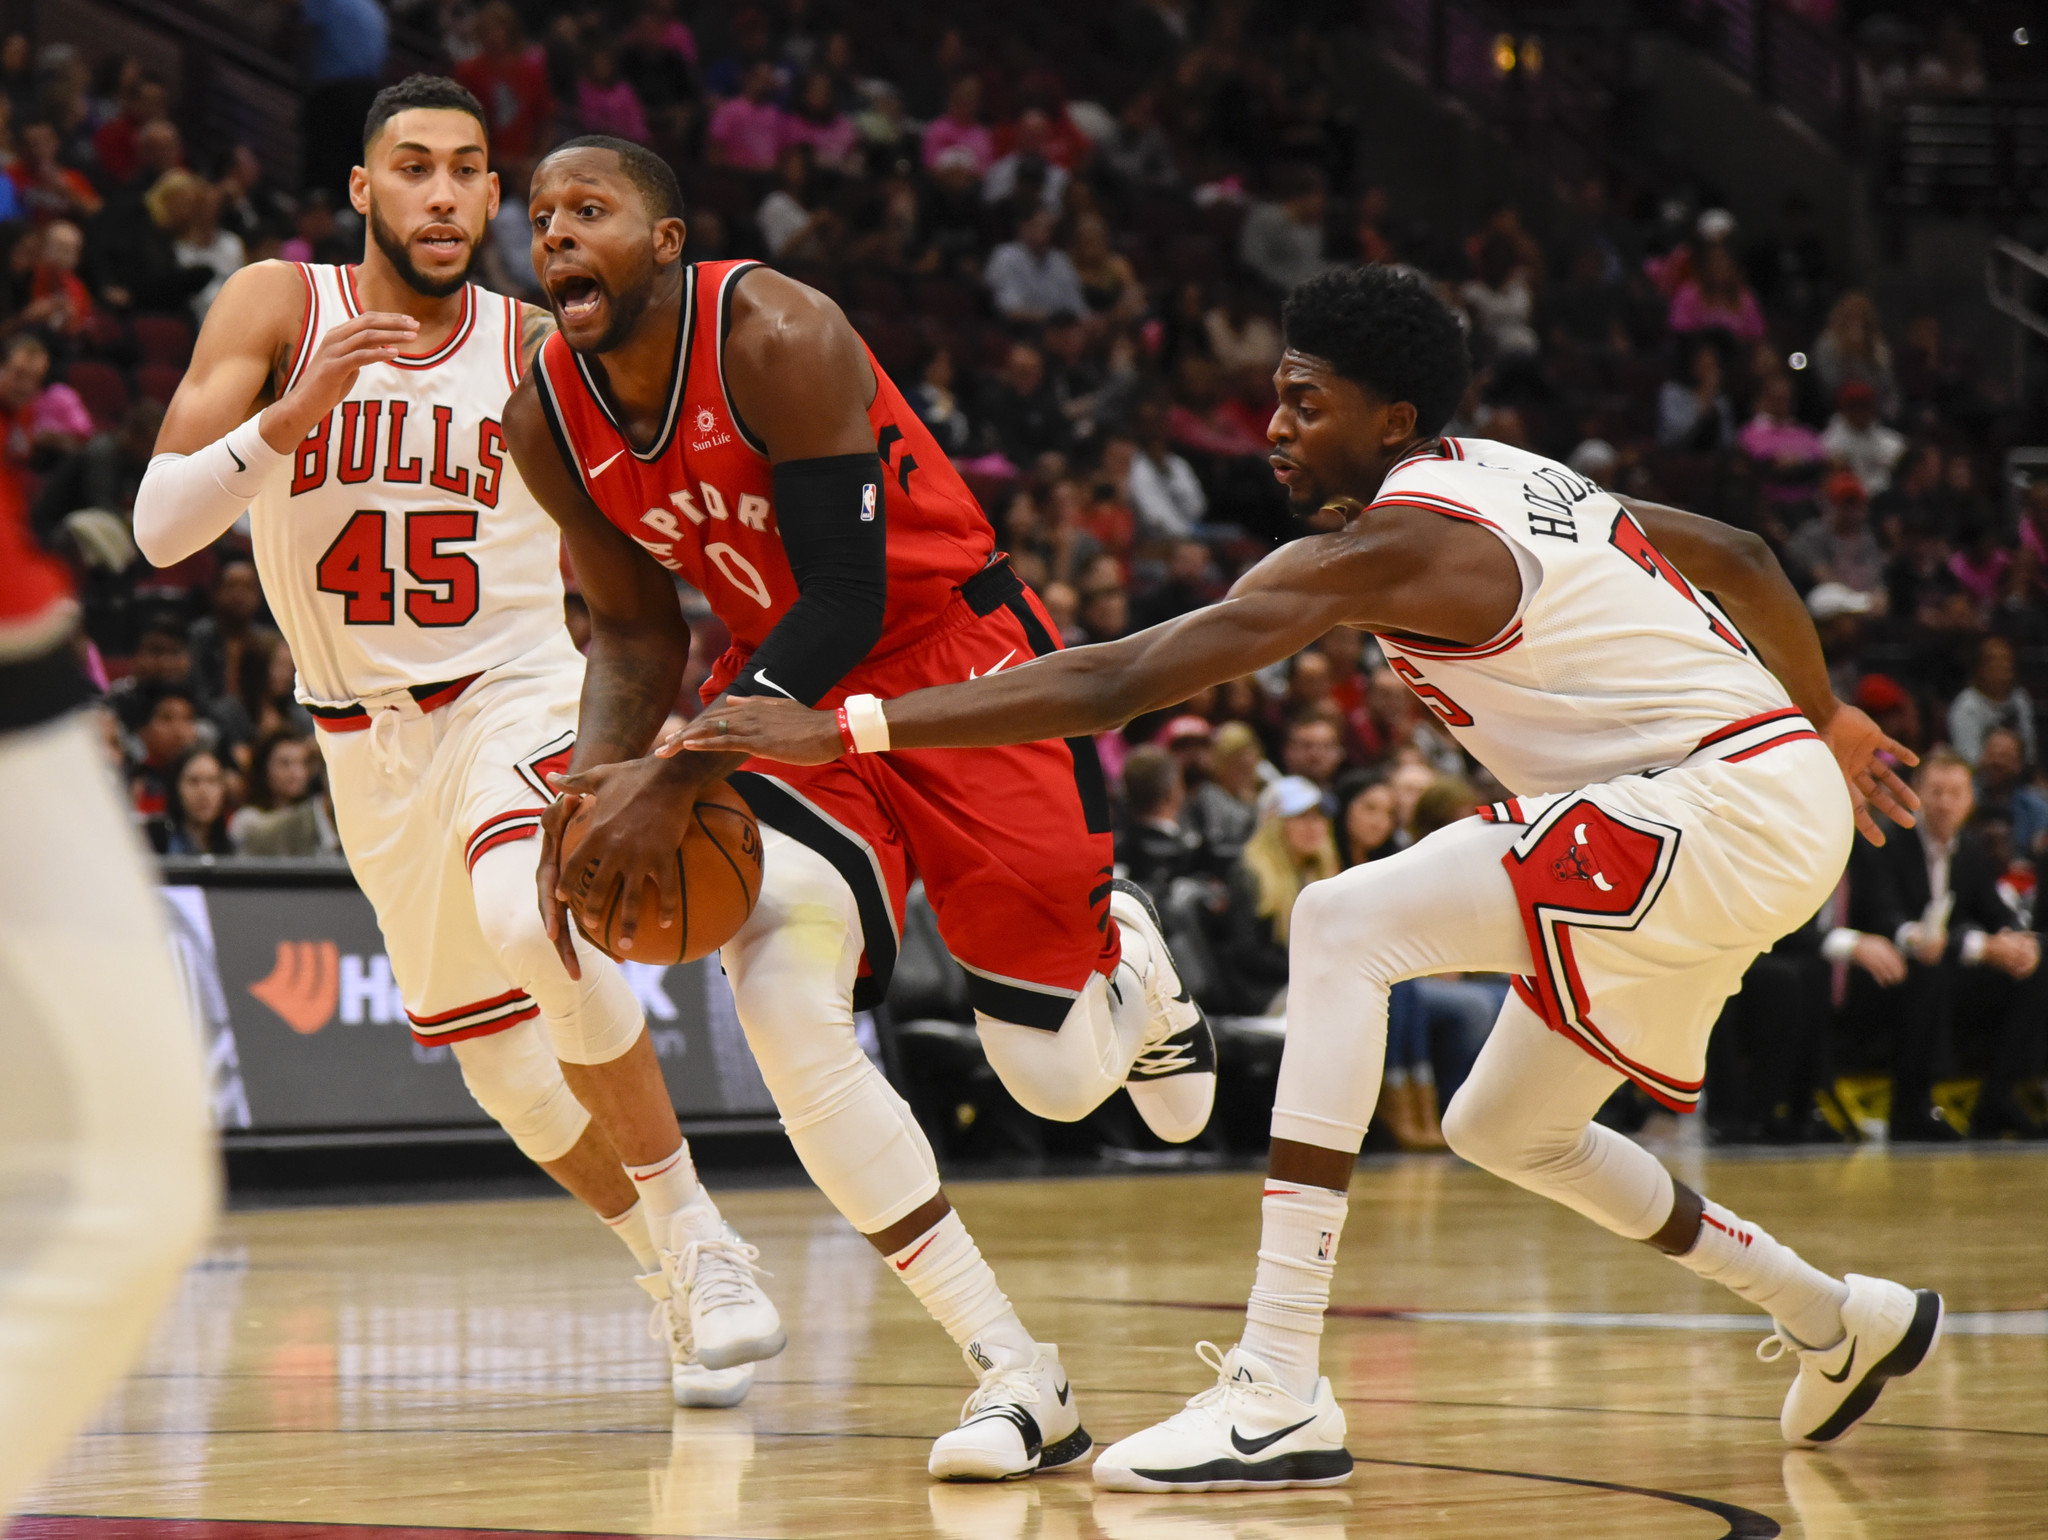 Ct-preseason-bulls-vs-raptors-photos-20171013